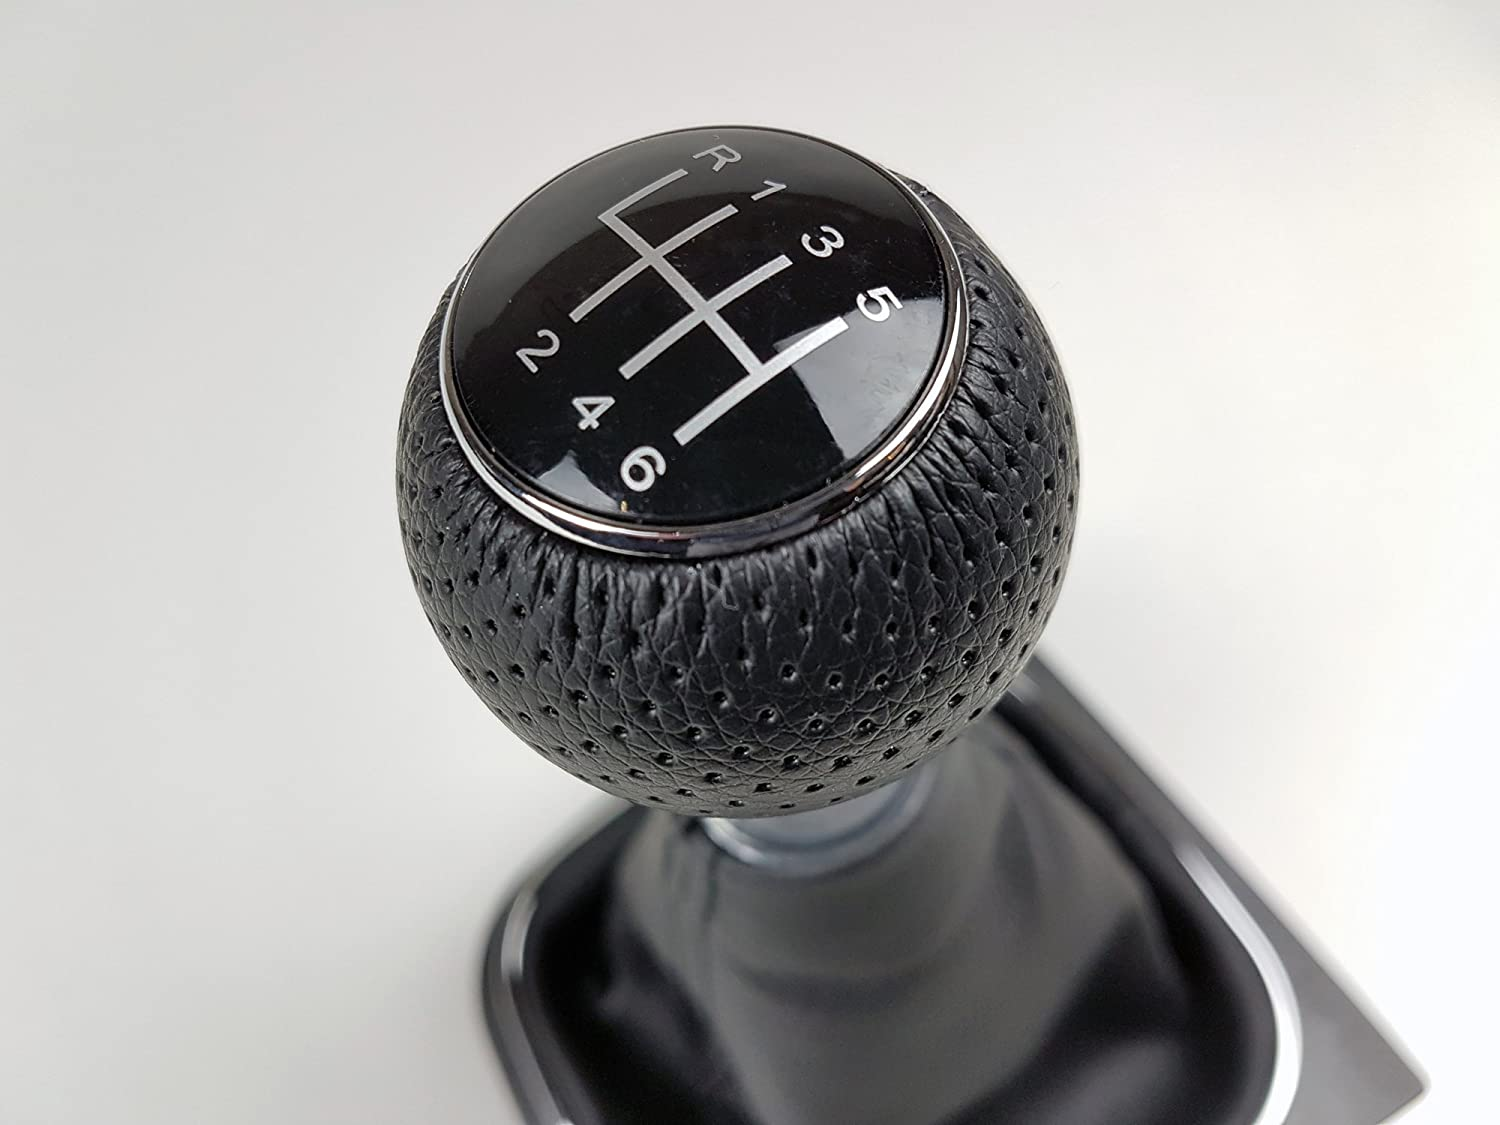 1K0711113 2004-2009 New 6 Speed Manual Gear Shift Knob /& Gaiter Boot Black Leather